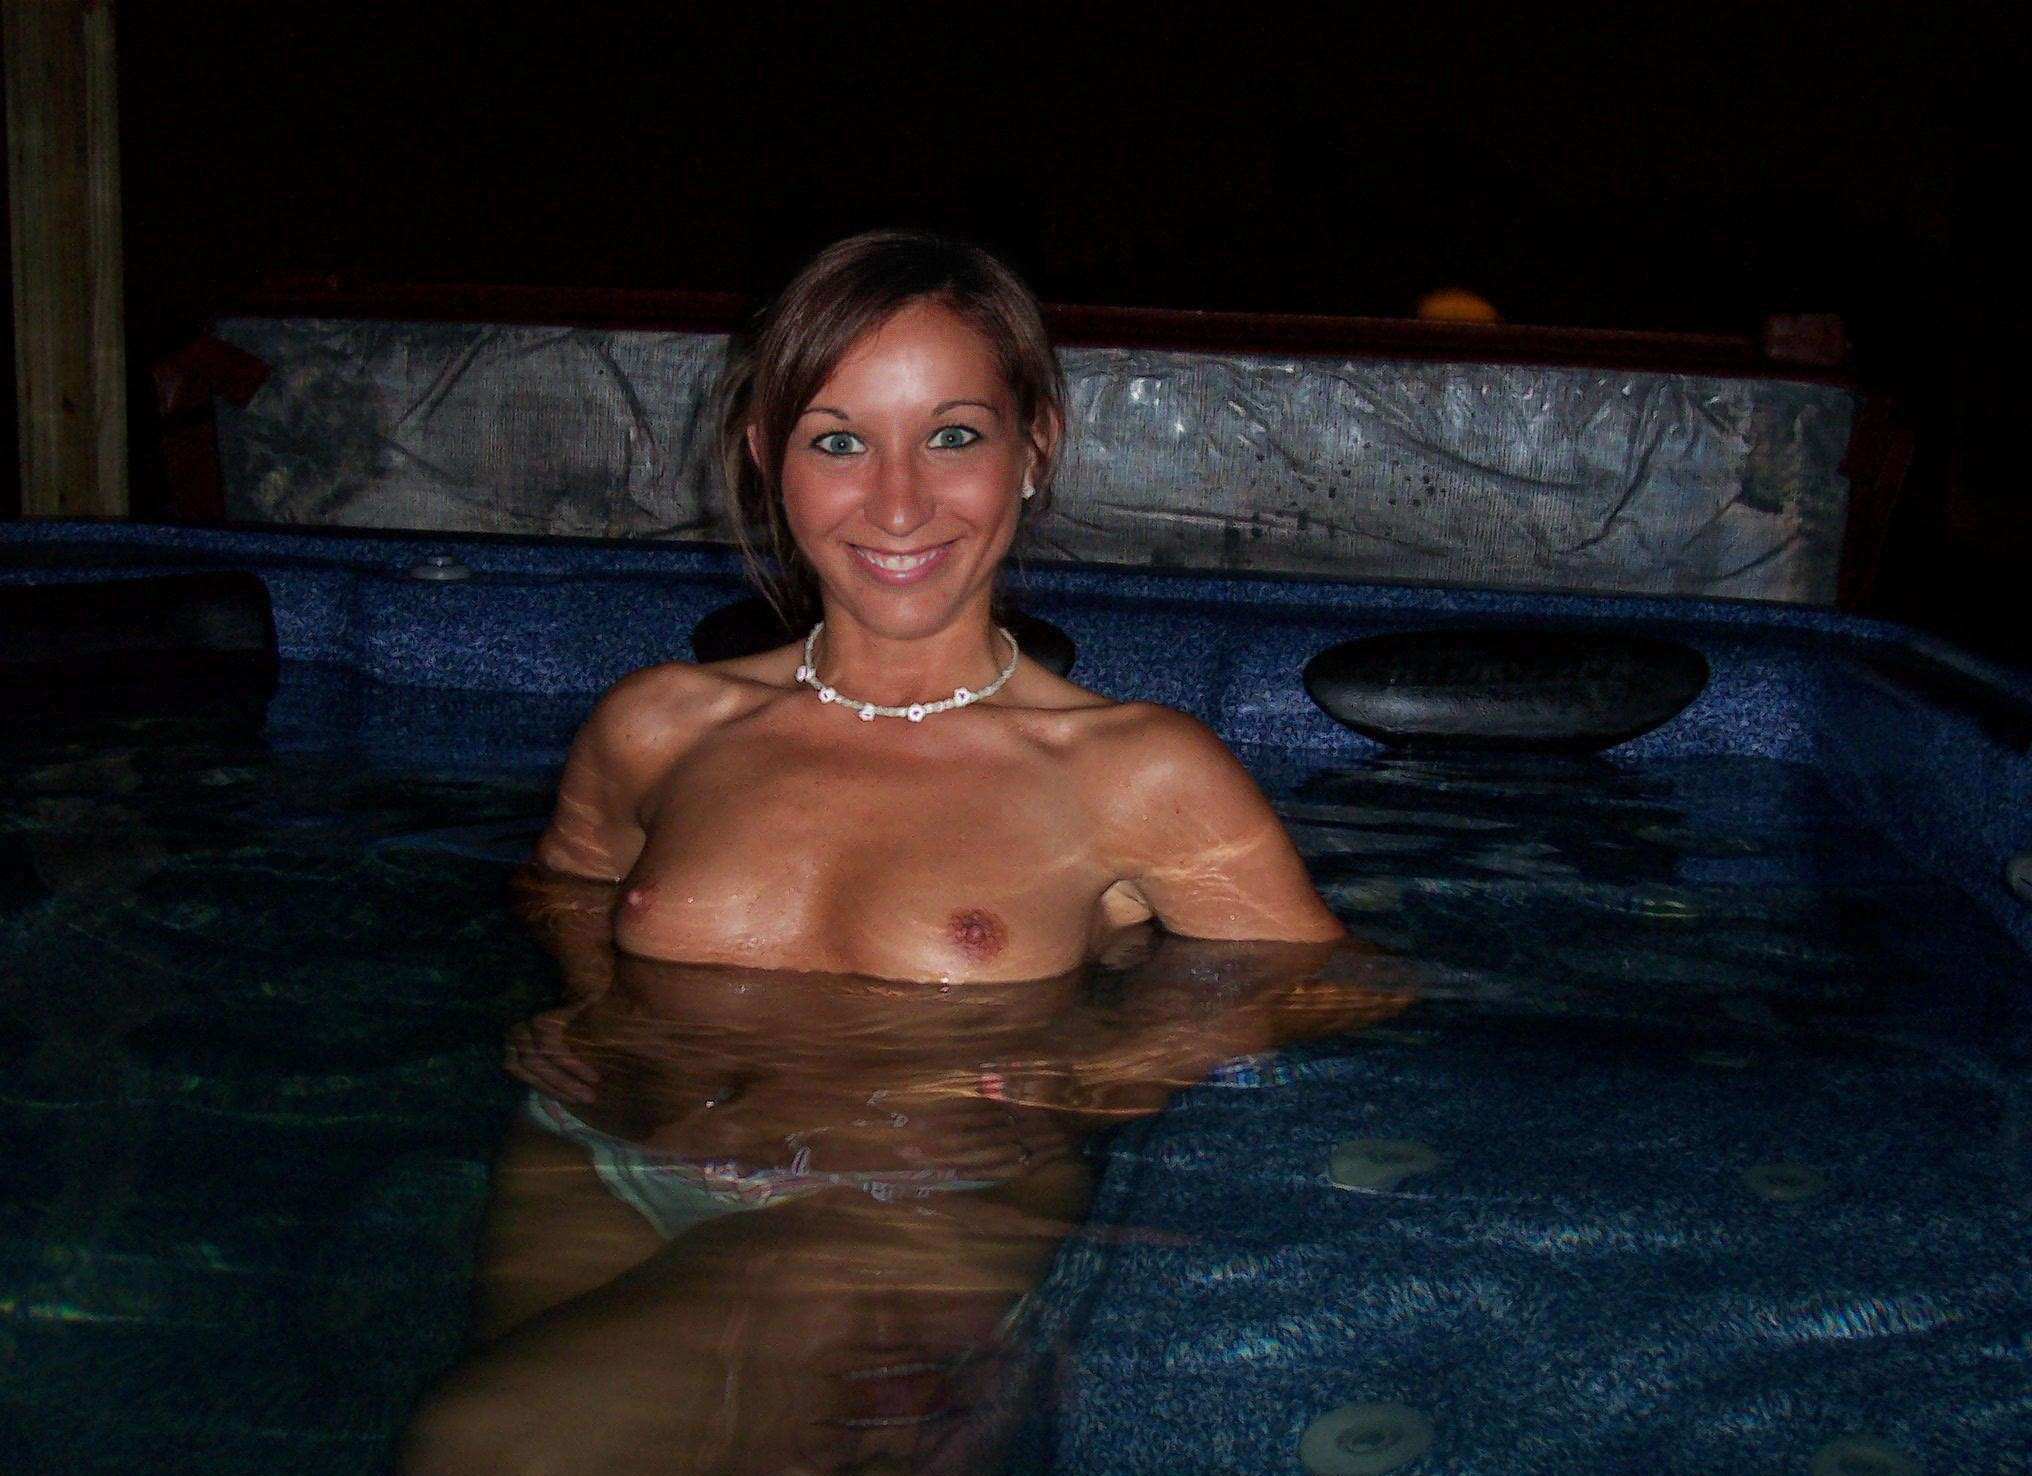 girls-nude-in-pool-wet-photo-mix-vol6-41